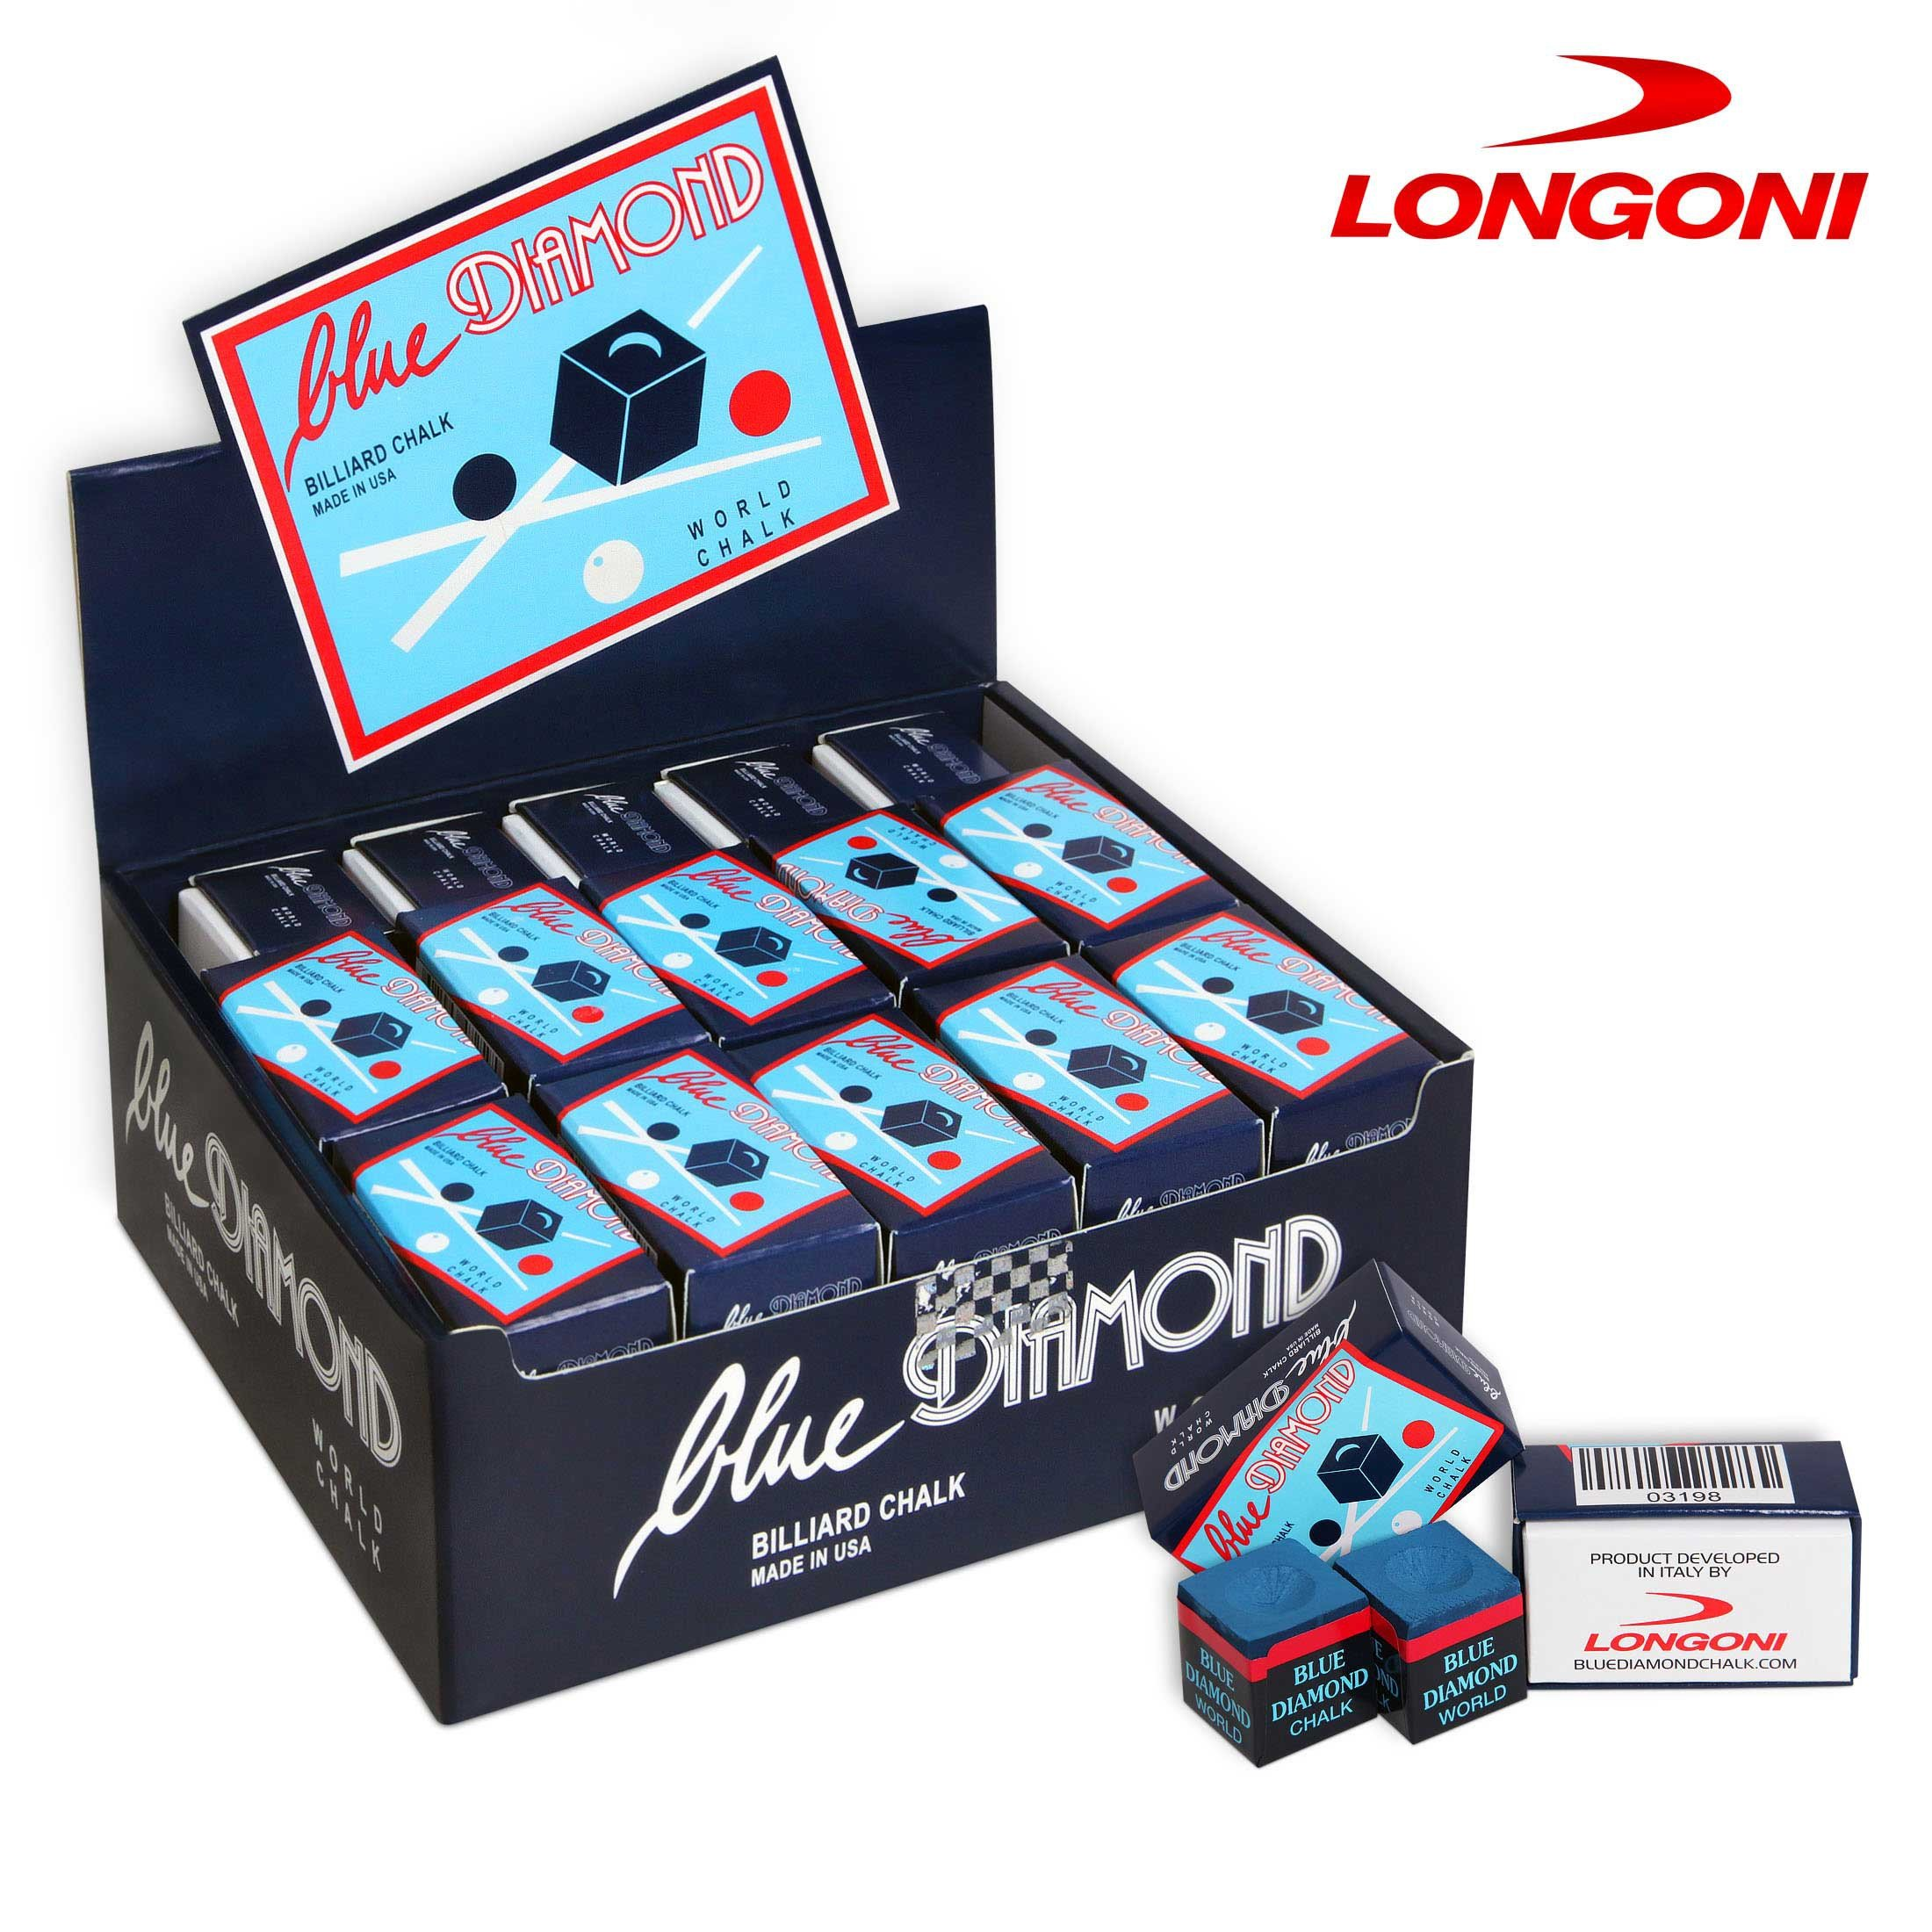 BLUE DIAMOND CHALK - GENUINE - 50 pcs - 1 case - by Longoni by Blue Diamond